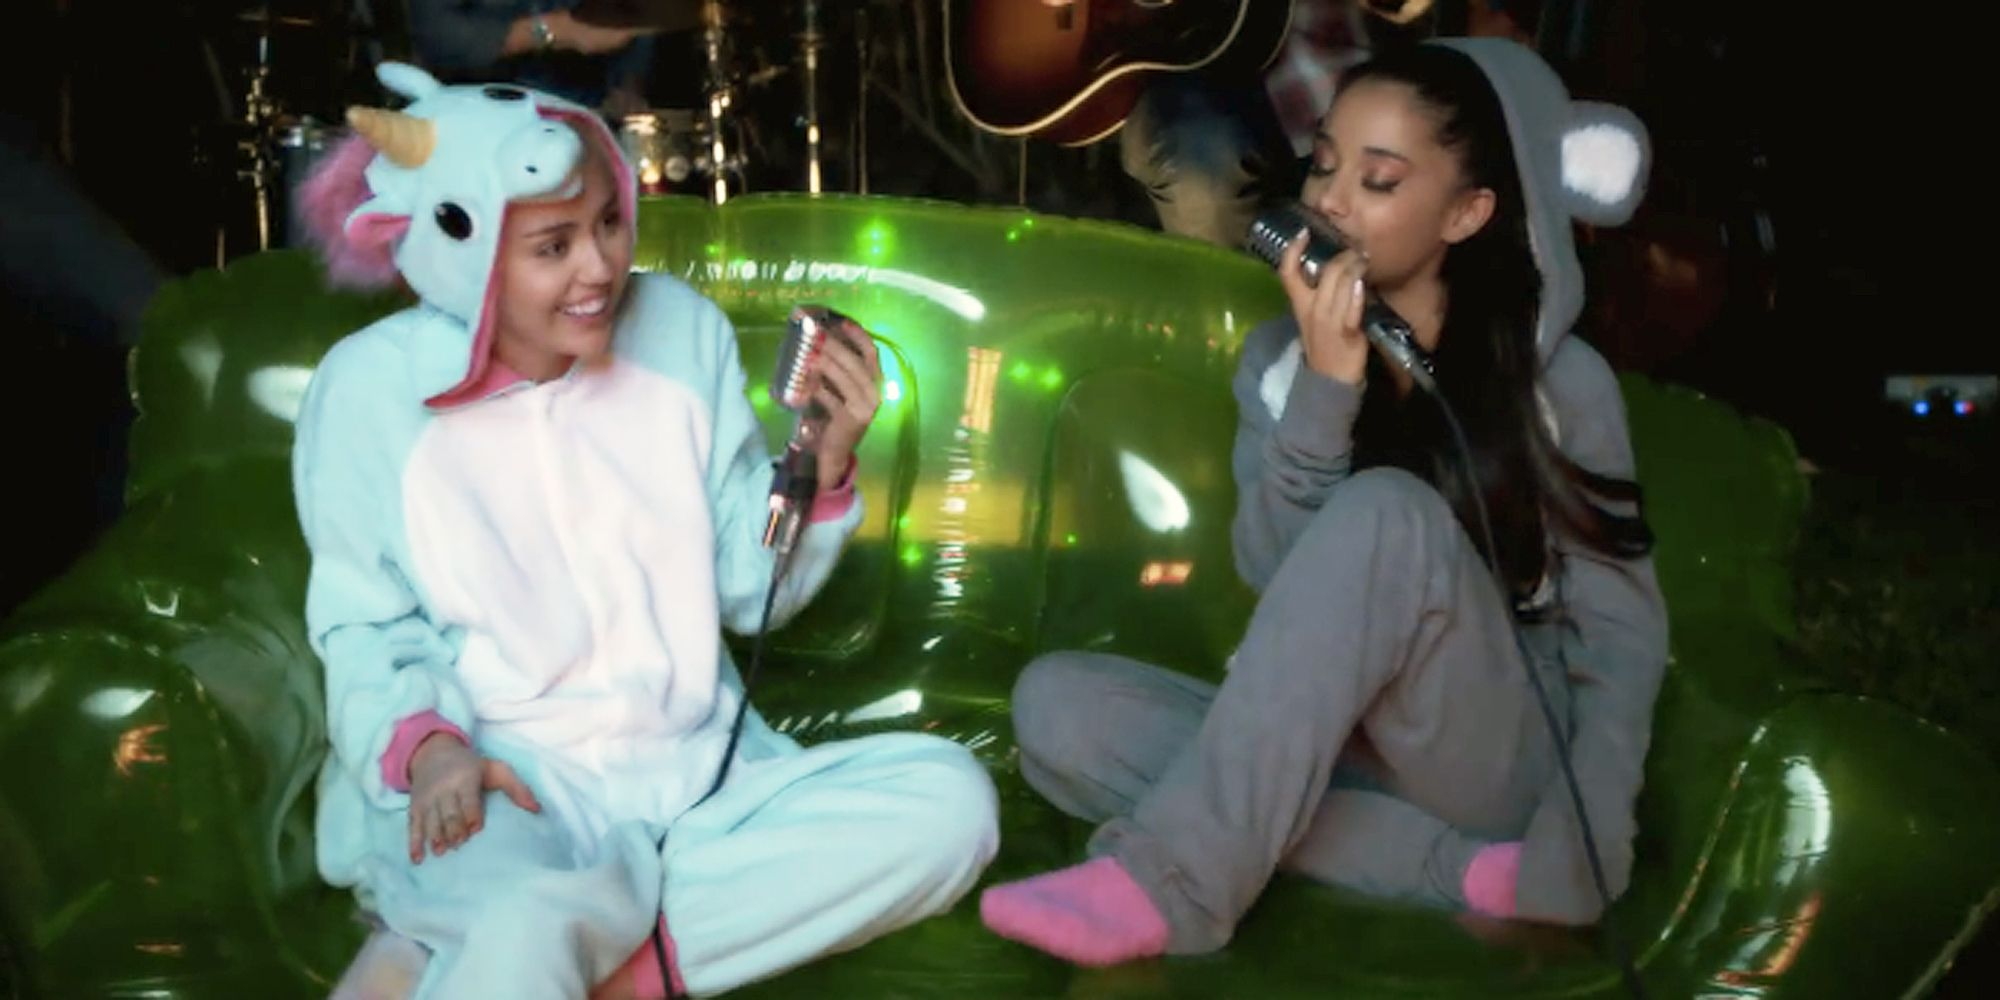 miley cyrus and ariana grande perform